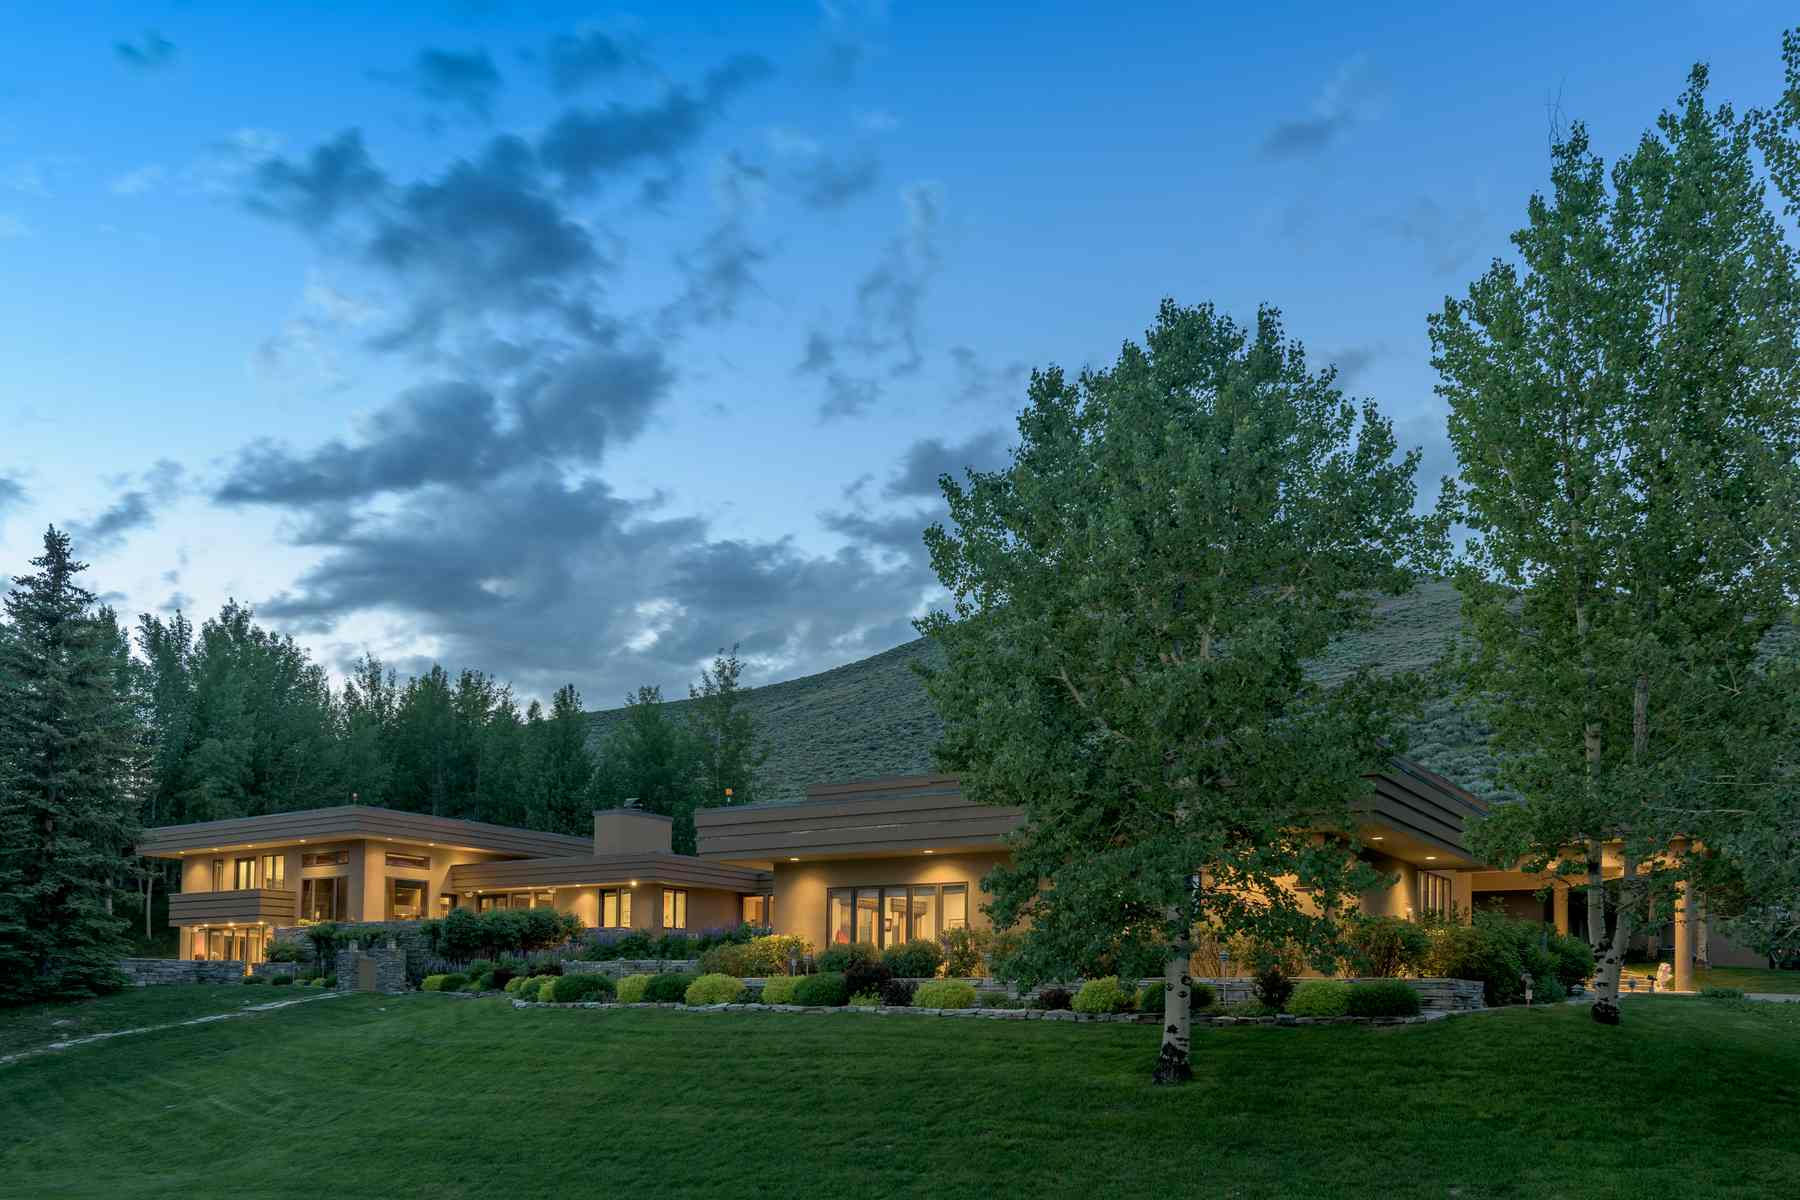 Maison unifamiliale pour l Vente à Spectacular Elevated Setting 455 N. Bigwood Drive Ketchum, Idaho, 83340 États-Unis